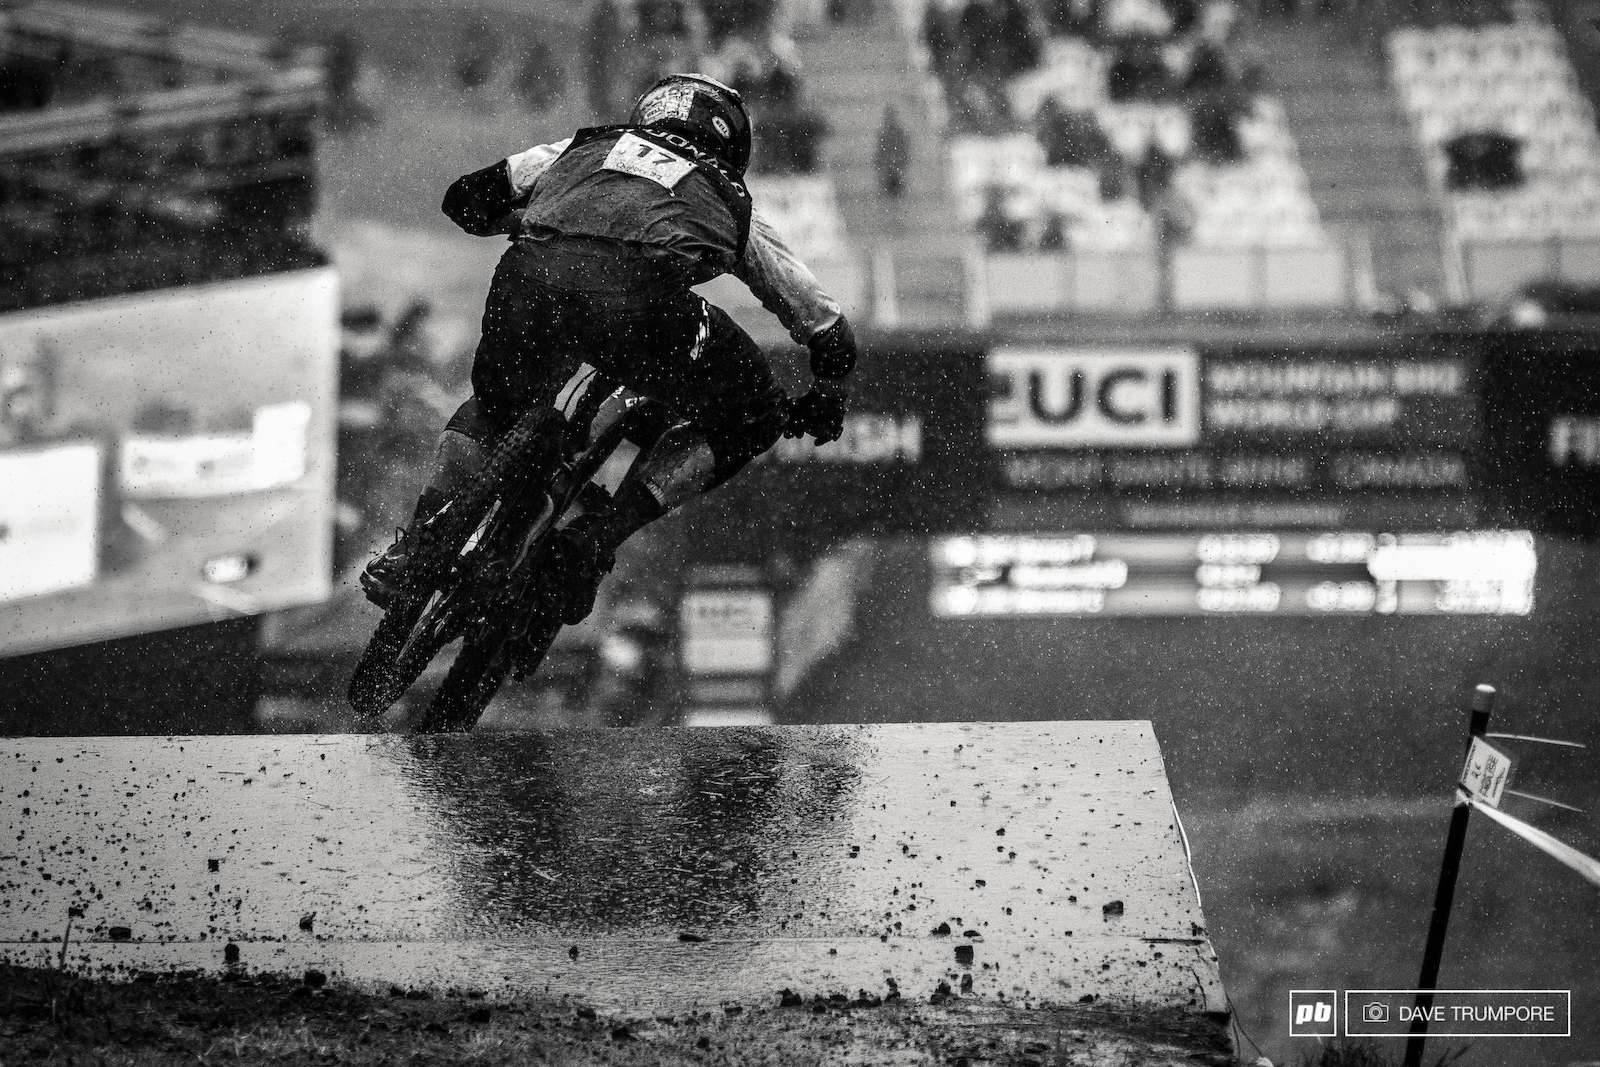 Brook Macdonald came down in some of the hardest rain of the day eventually finishing in just inside the top 50.